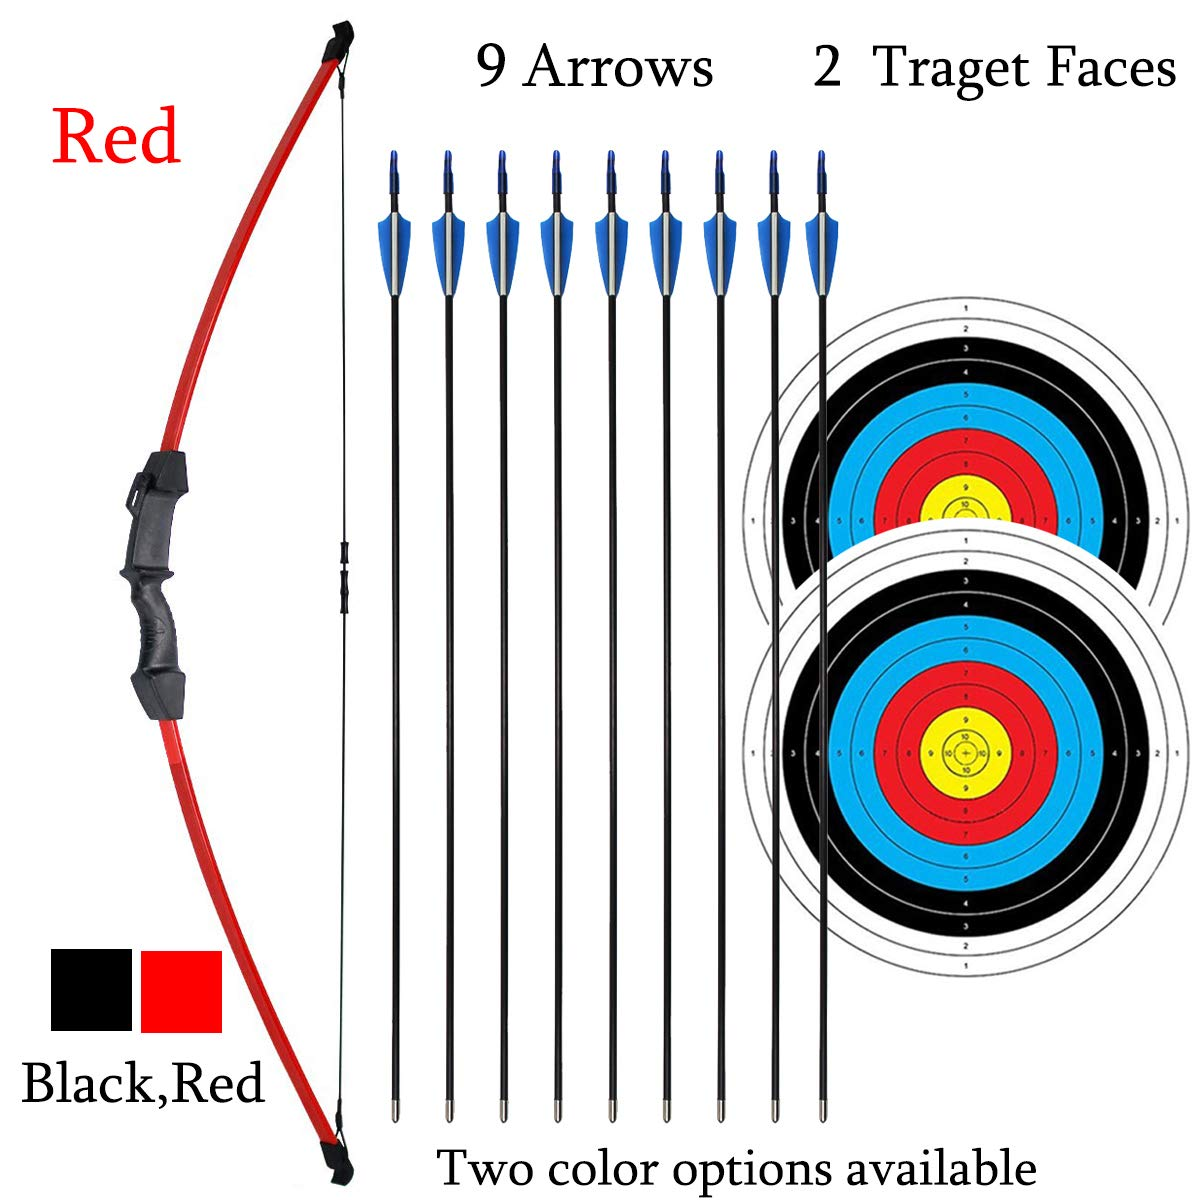 iMay 45'' Bow and Arrows Set with 9 Arrows 2 Target Faces for Teens Outdoor Archery Beginner Gift Recurve Bow Longbow Kit (Red) by iMay